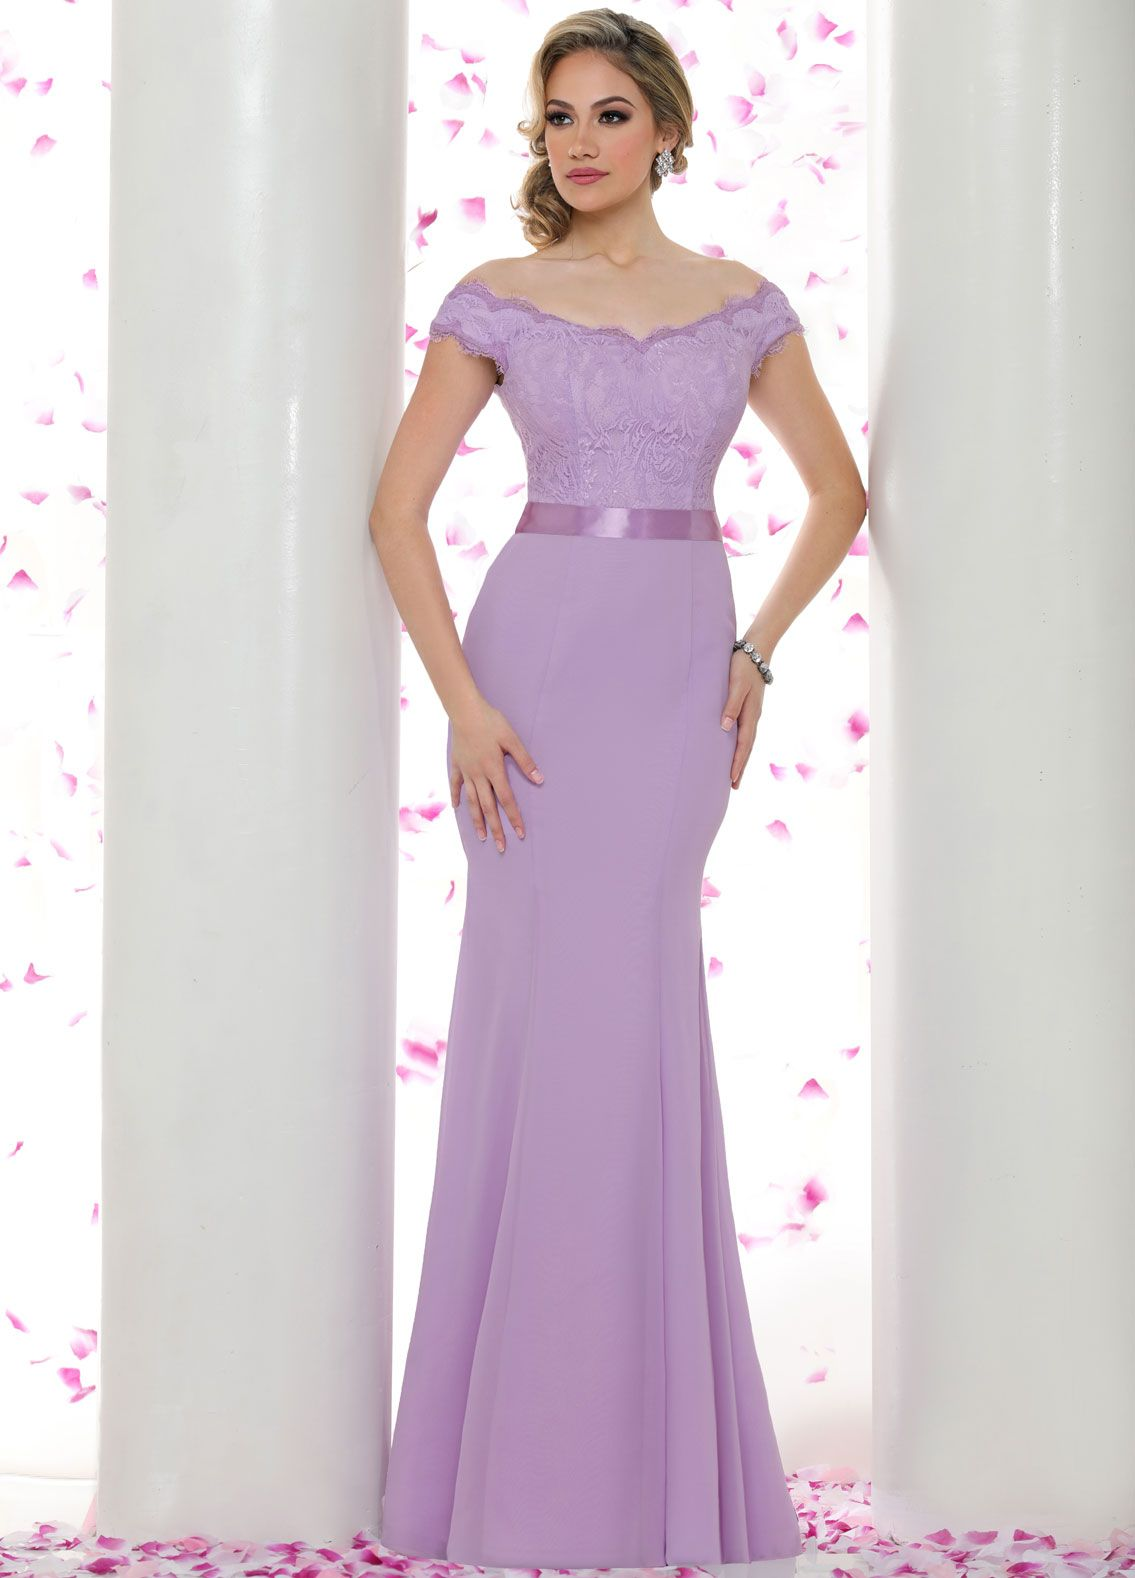 This romantic gown ties in perfectly with the theme of eternal this romantic gown ties in perfectly with the theme of eternal love a ombrellifo Images